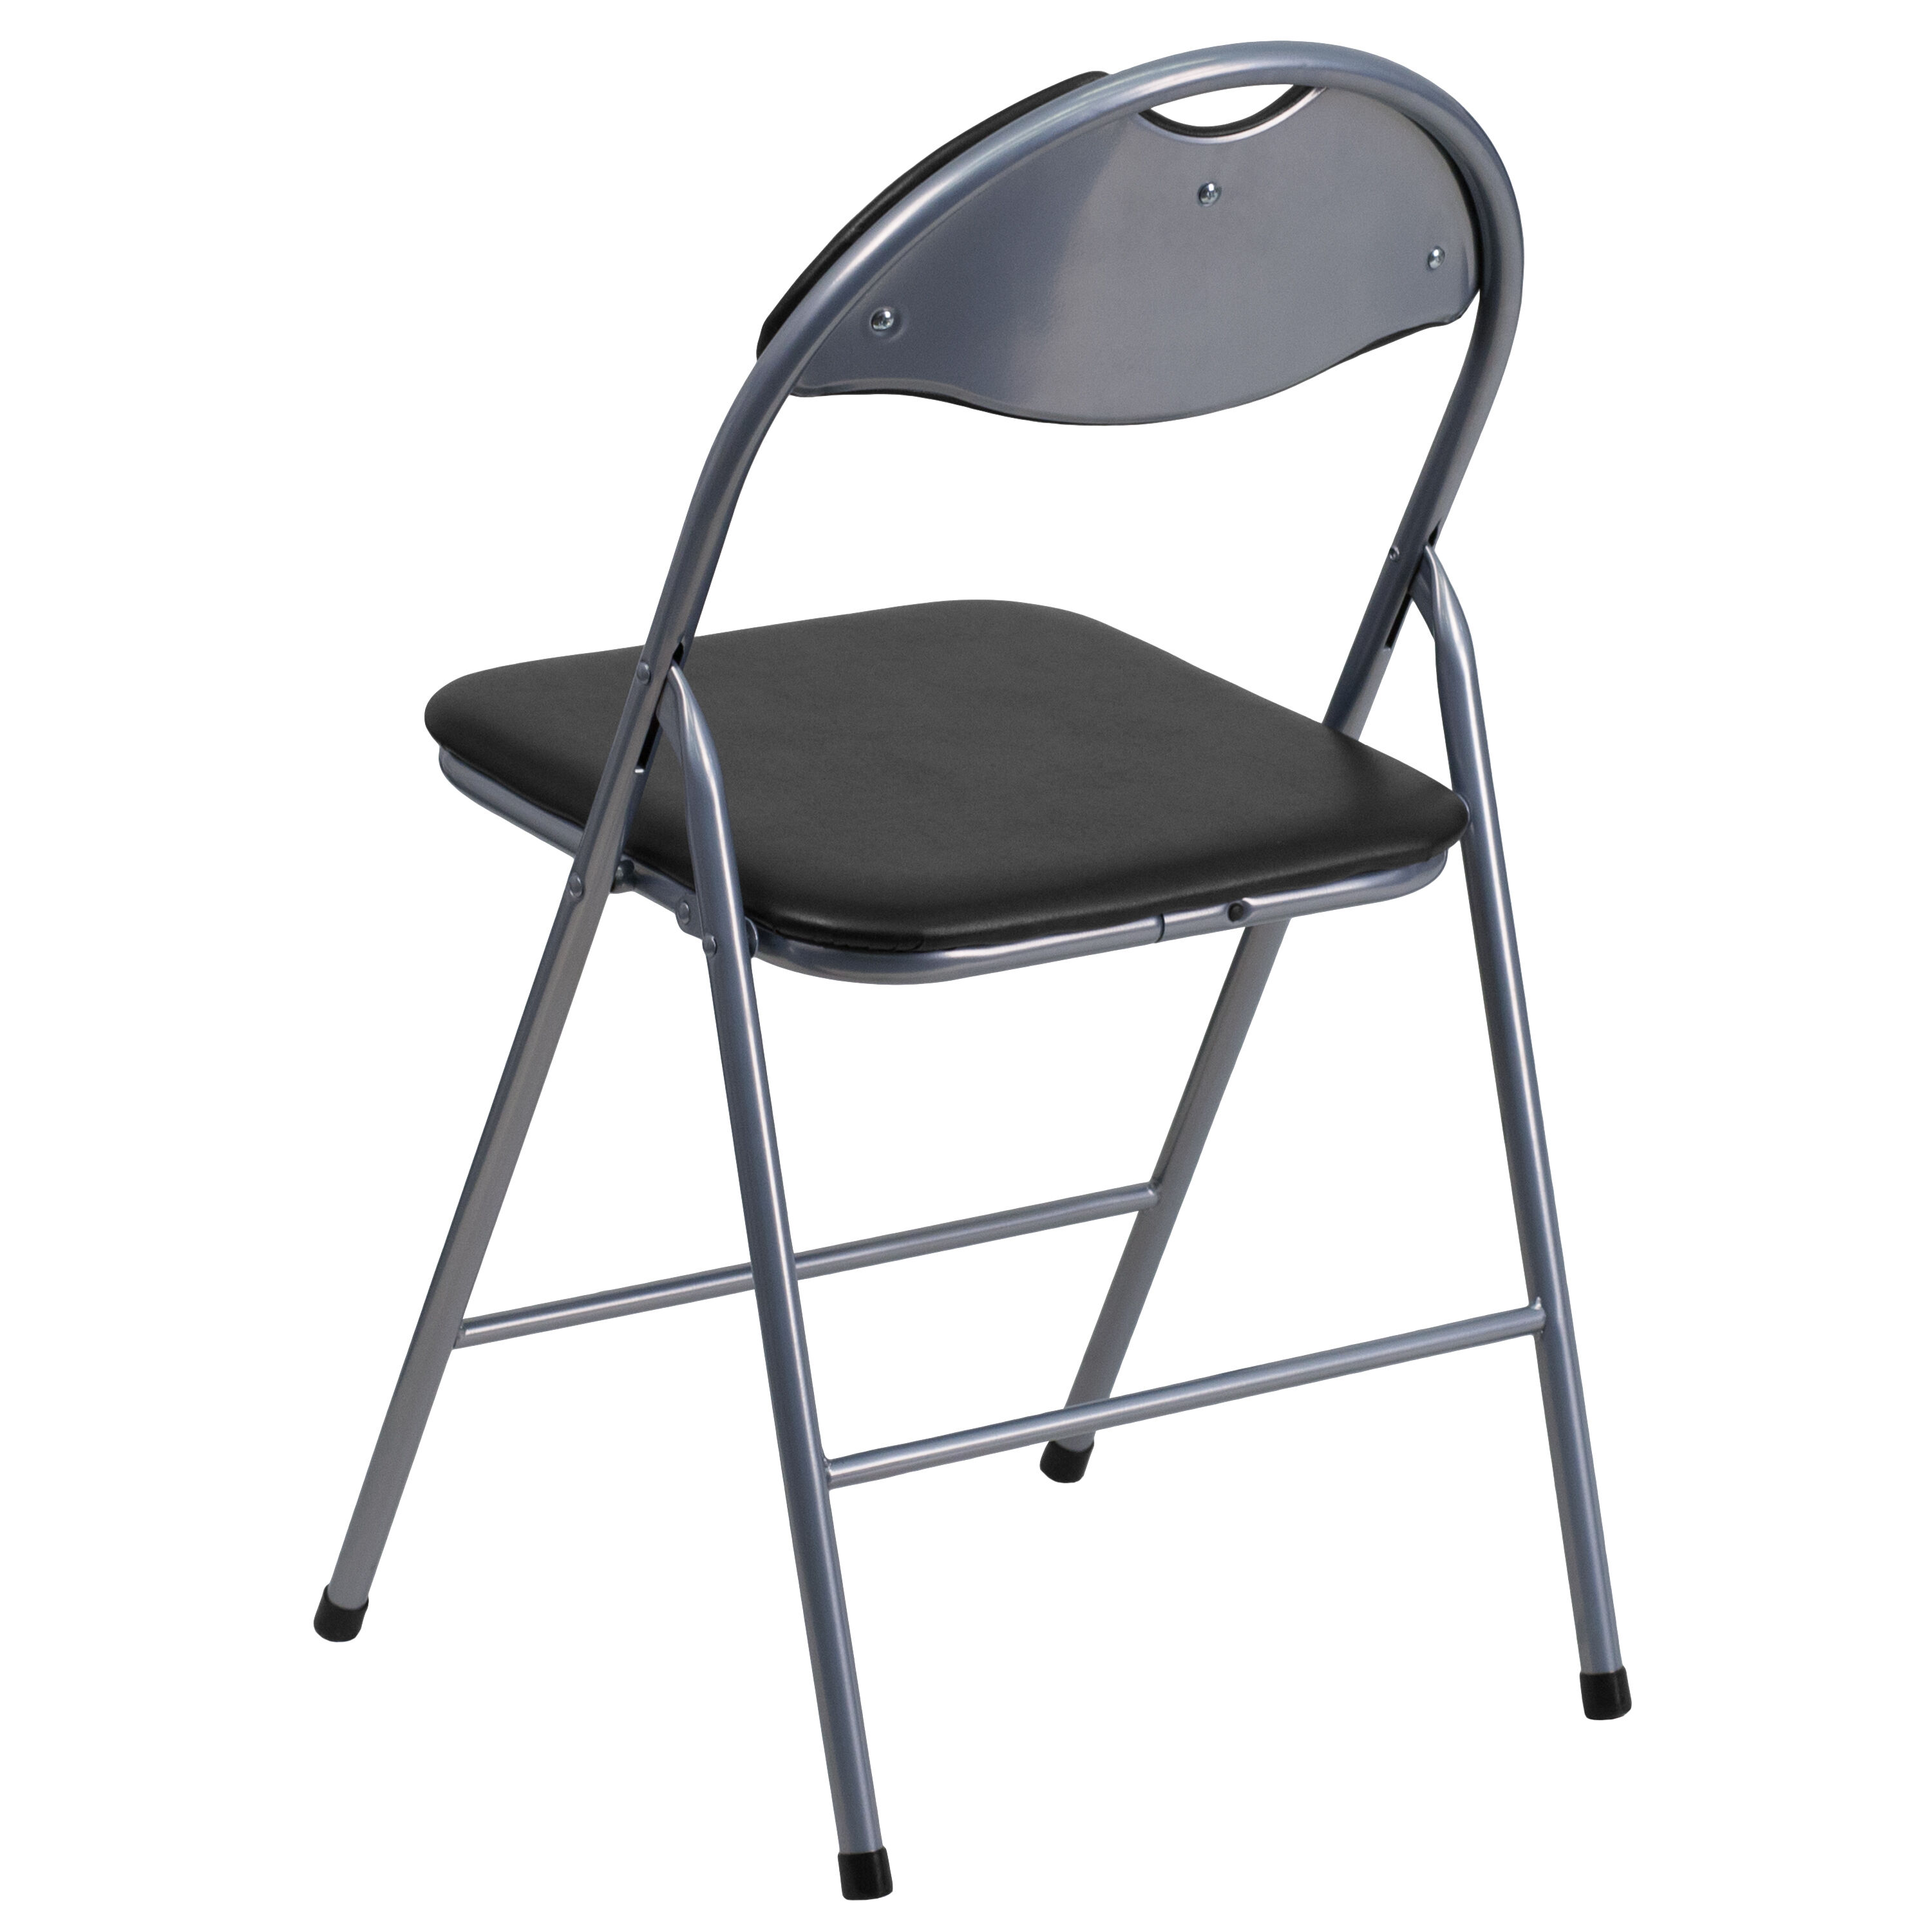 folding chair outlet lift recliner chairs canada black vinyl yb yj806h gg